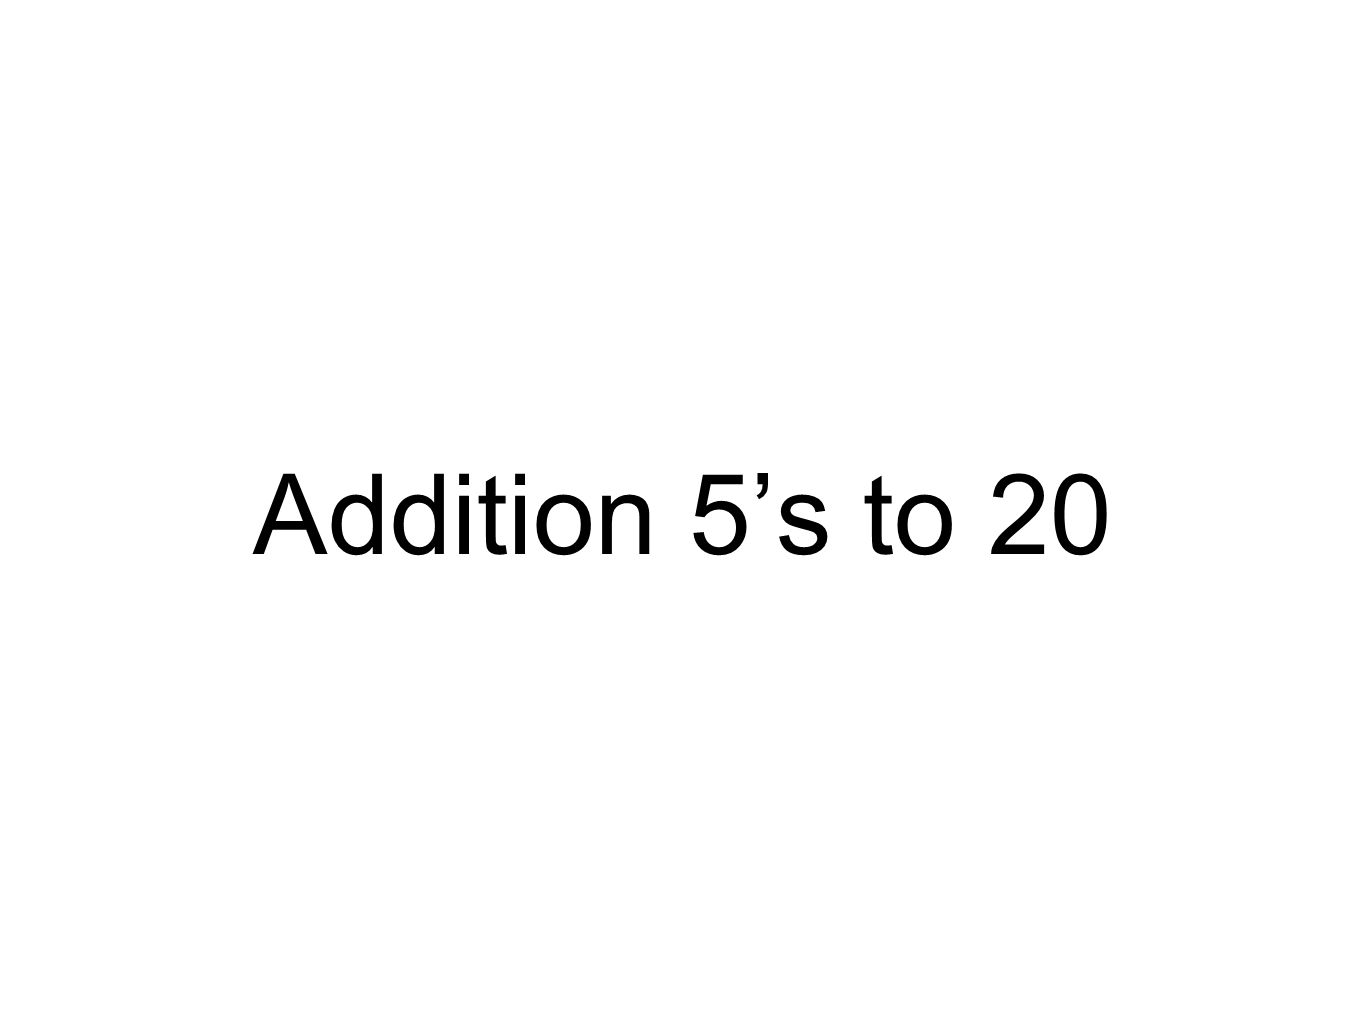 Addition 5's to 20